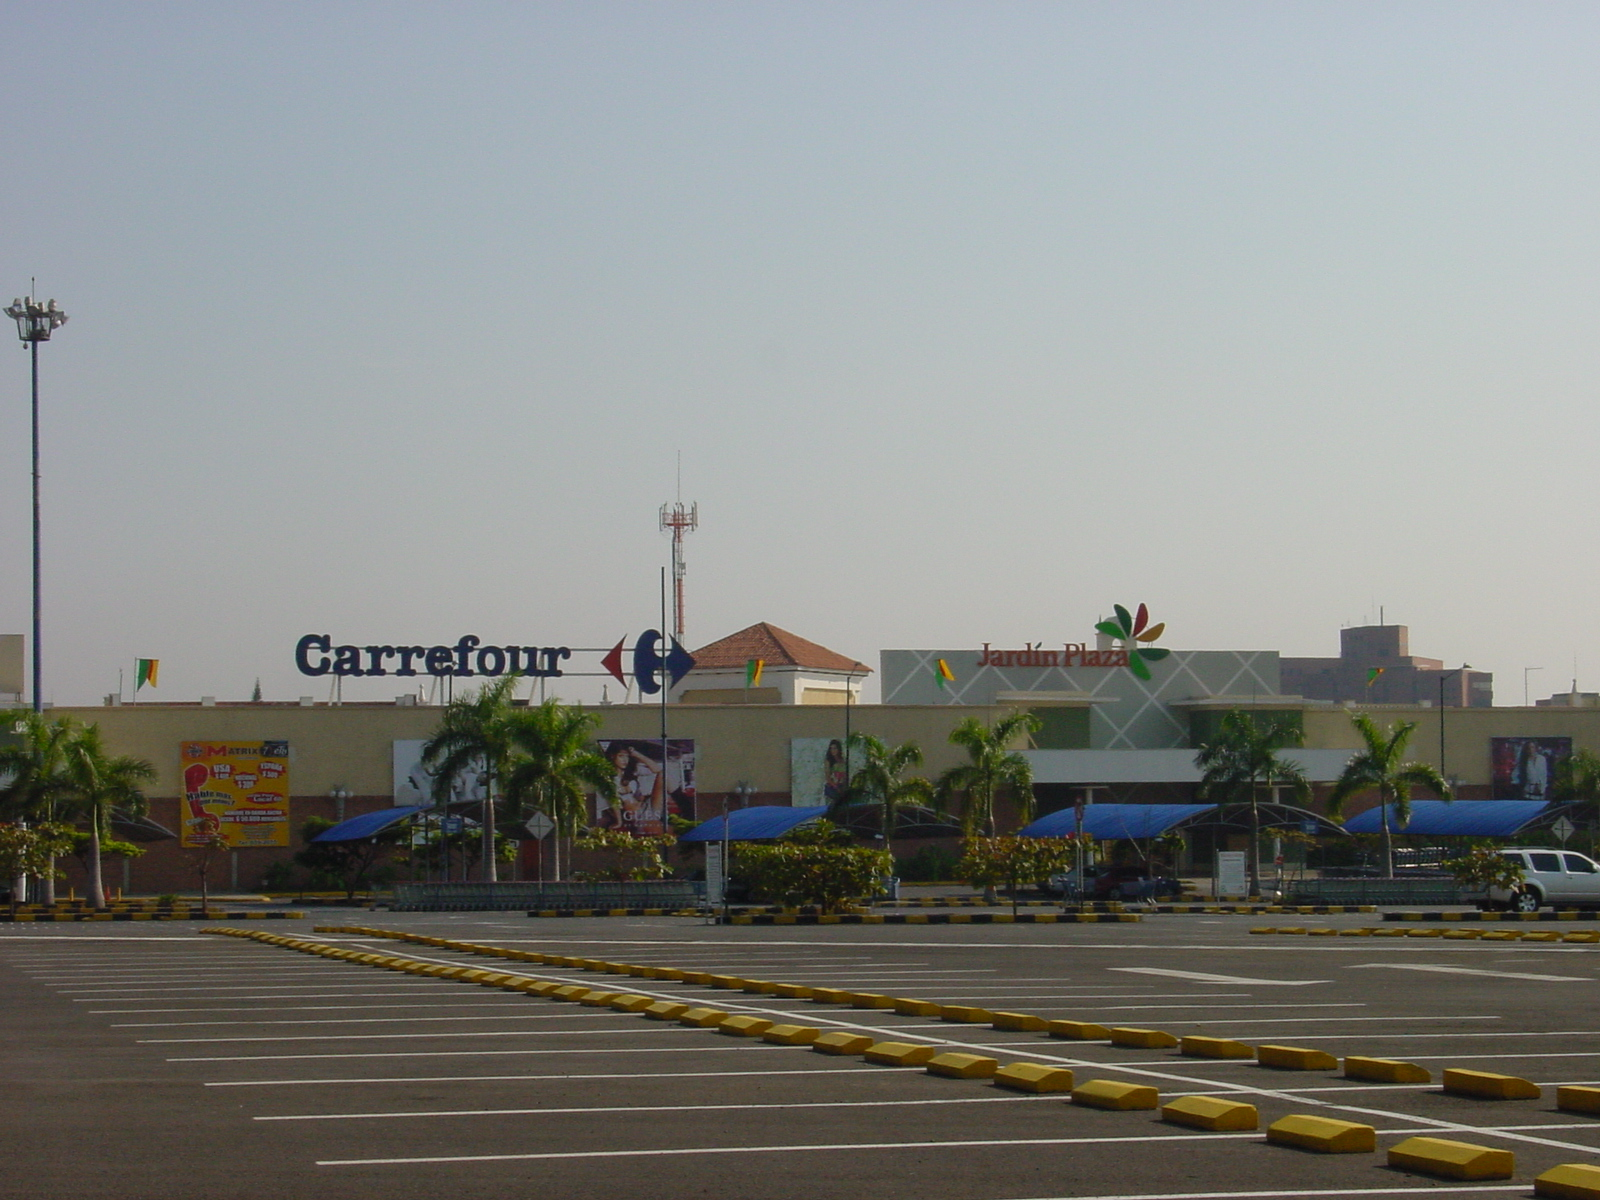 Centro comercial jard n plaza cali inelco s a s for Jardin plaza cali